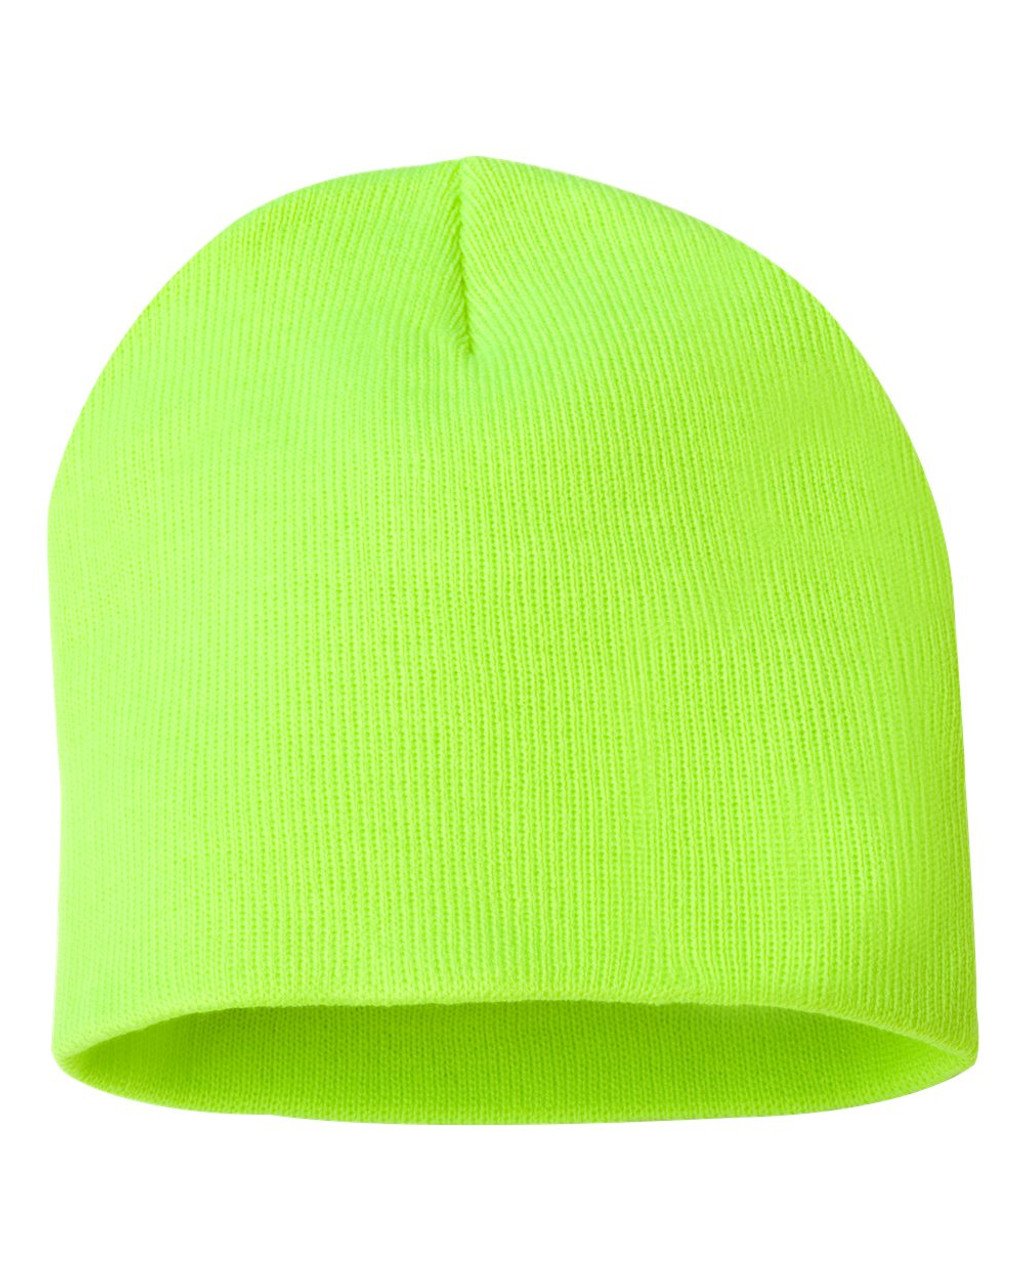 "Safety Yellow - SP08 Sportsman Acrylic Knit 8"" Toque 